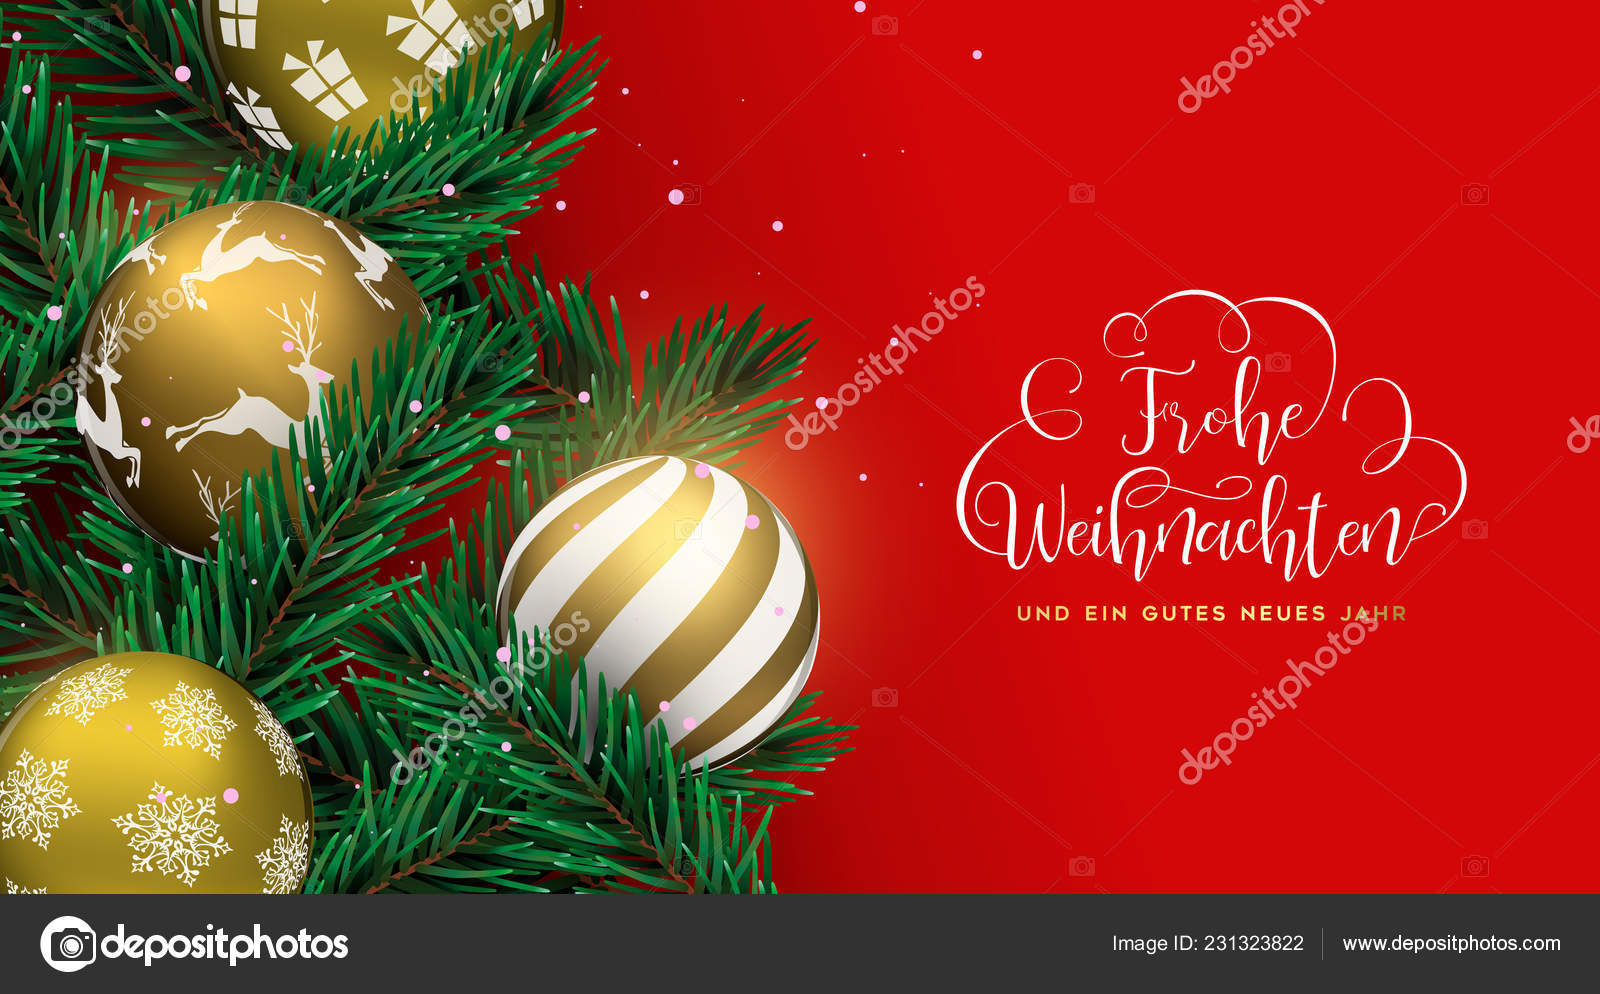 How Do You Say Merry Christmas In German.Merry Christmas Happy New Year Card German Language Gold